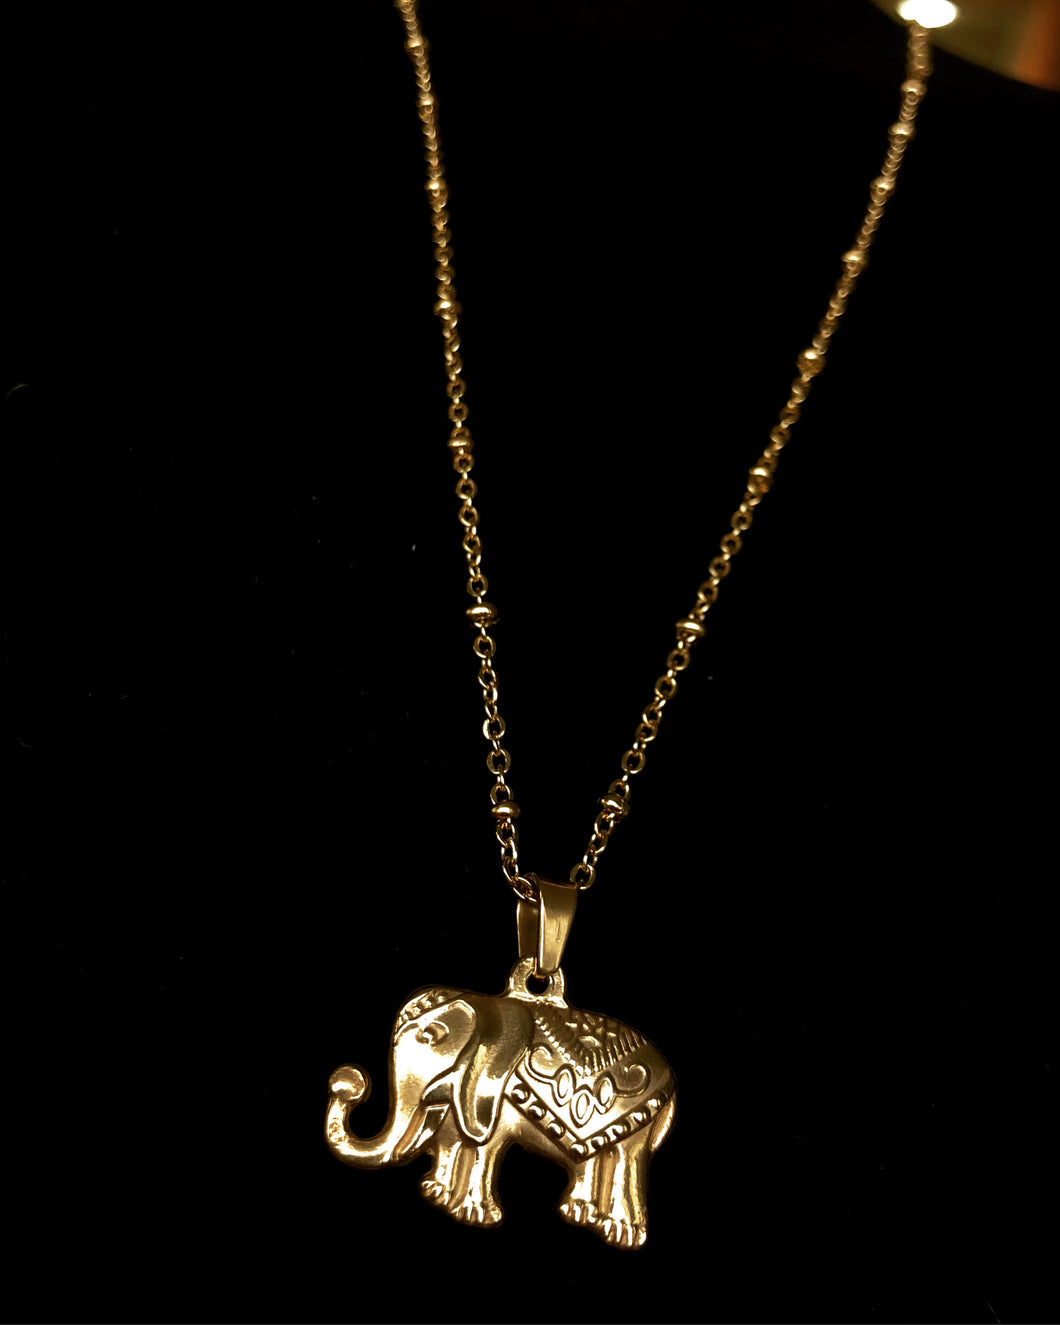 16(d) - Lucky Elephant Necklace (Elephants bring good luck and strength)